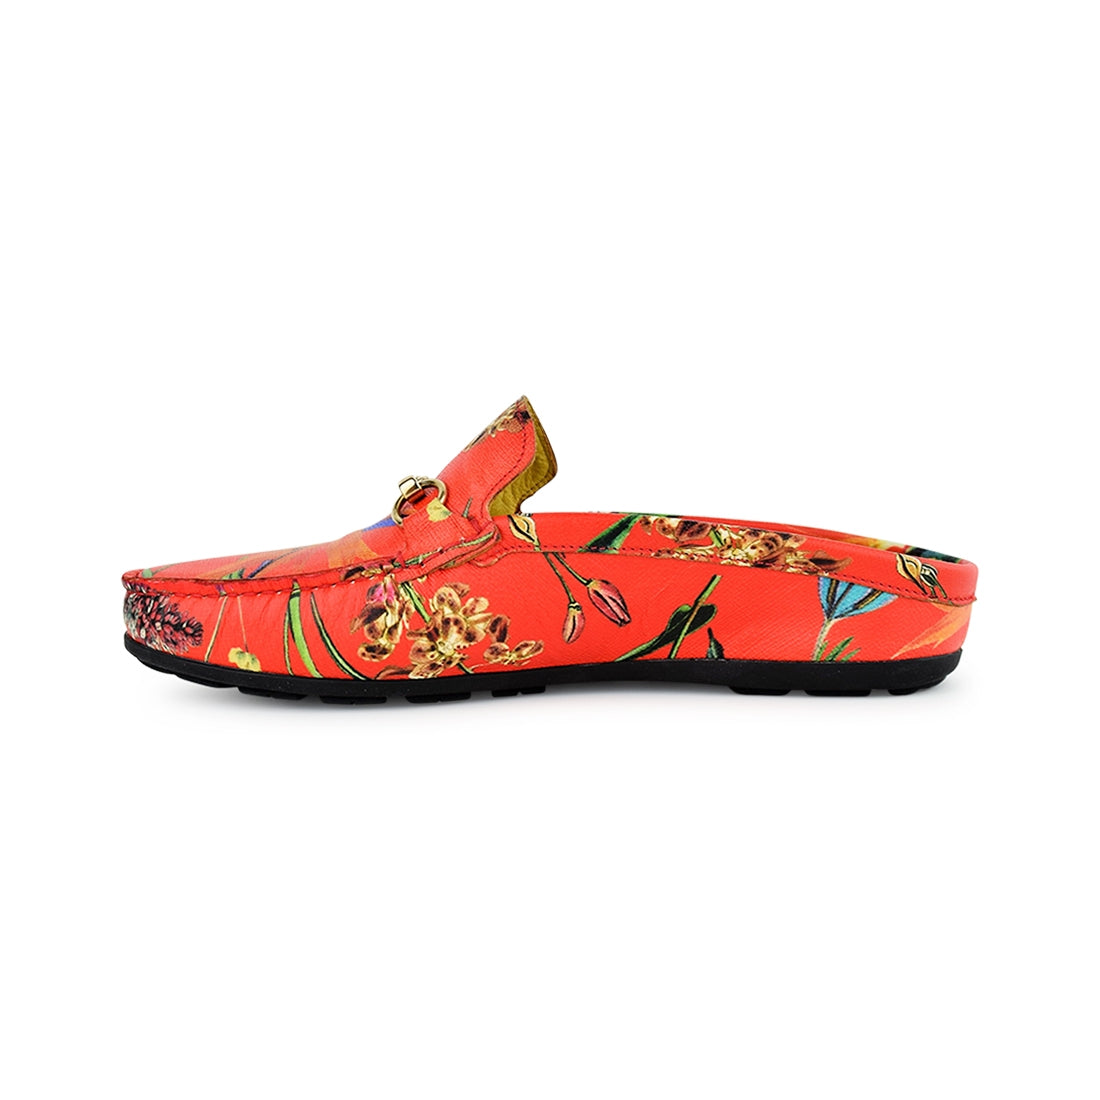 CARIN - Claris Open Backed Loafer Red Print